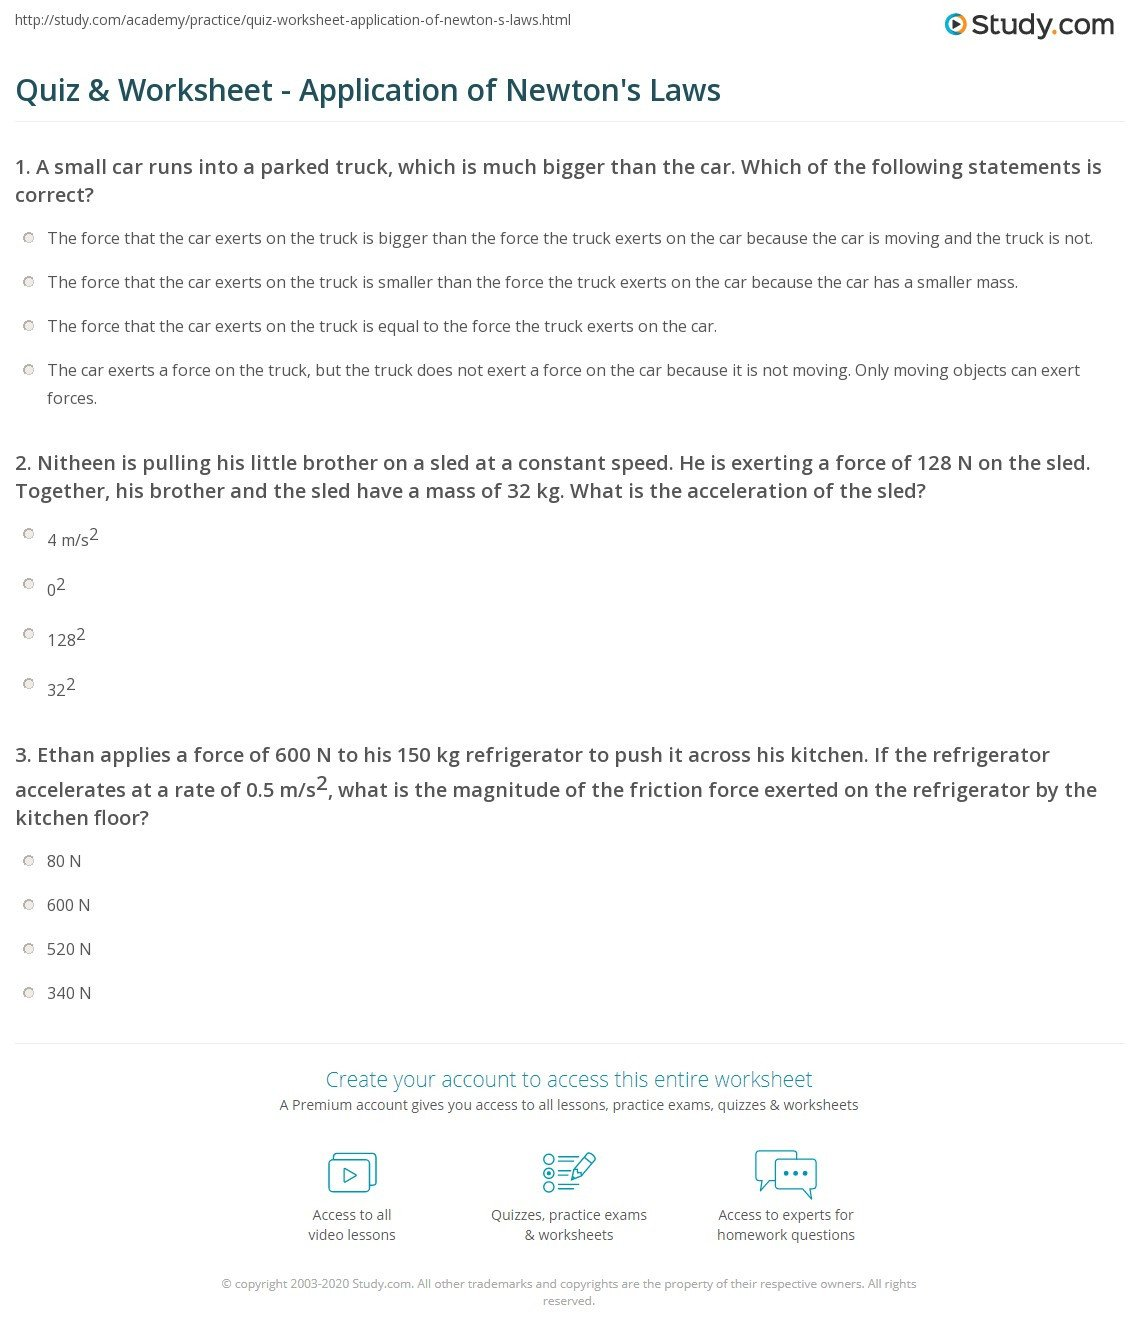 quiz worksheet application of newton s laws